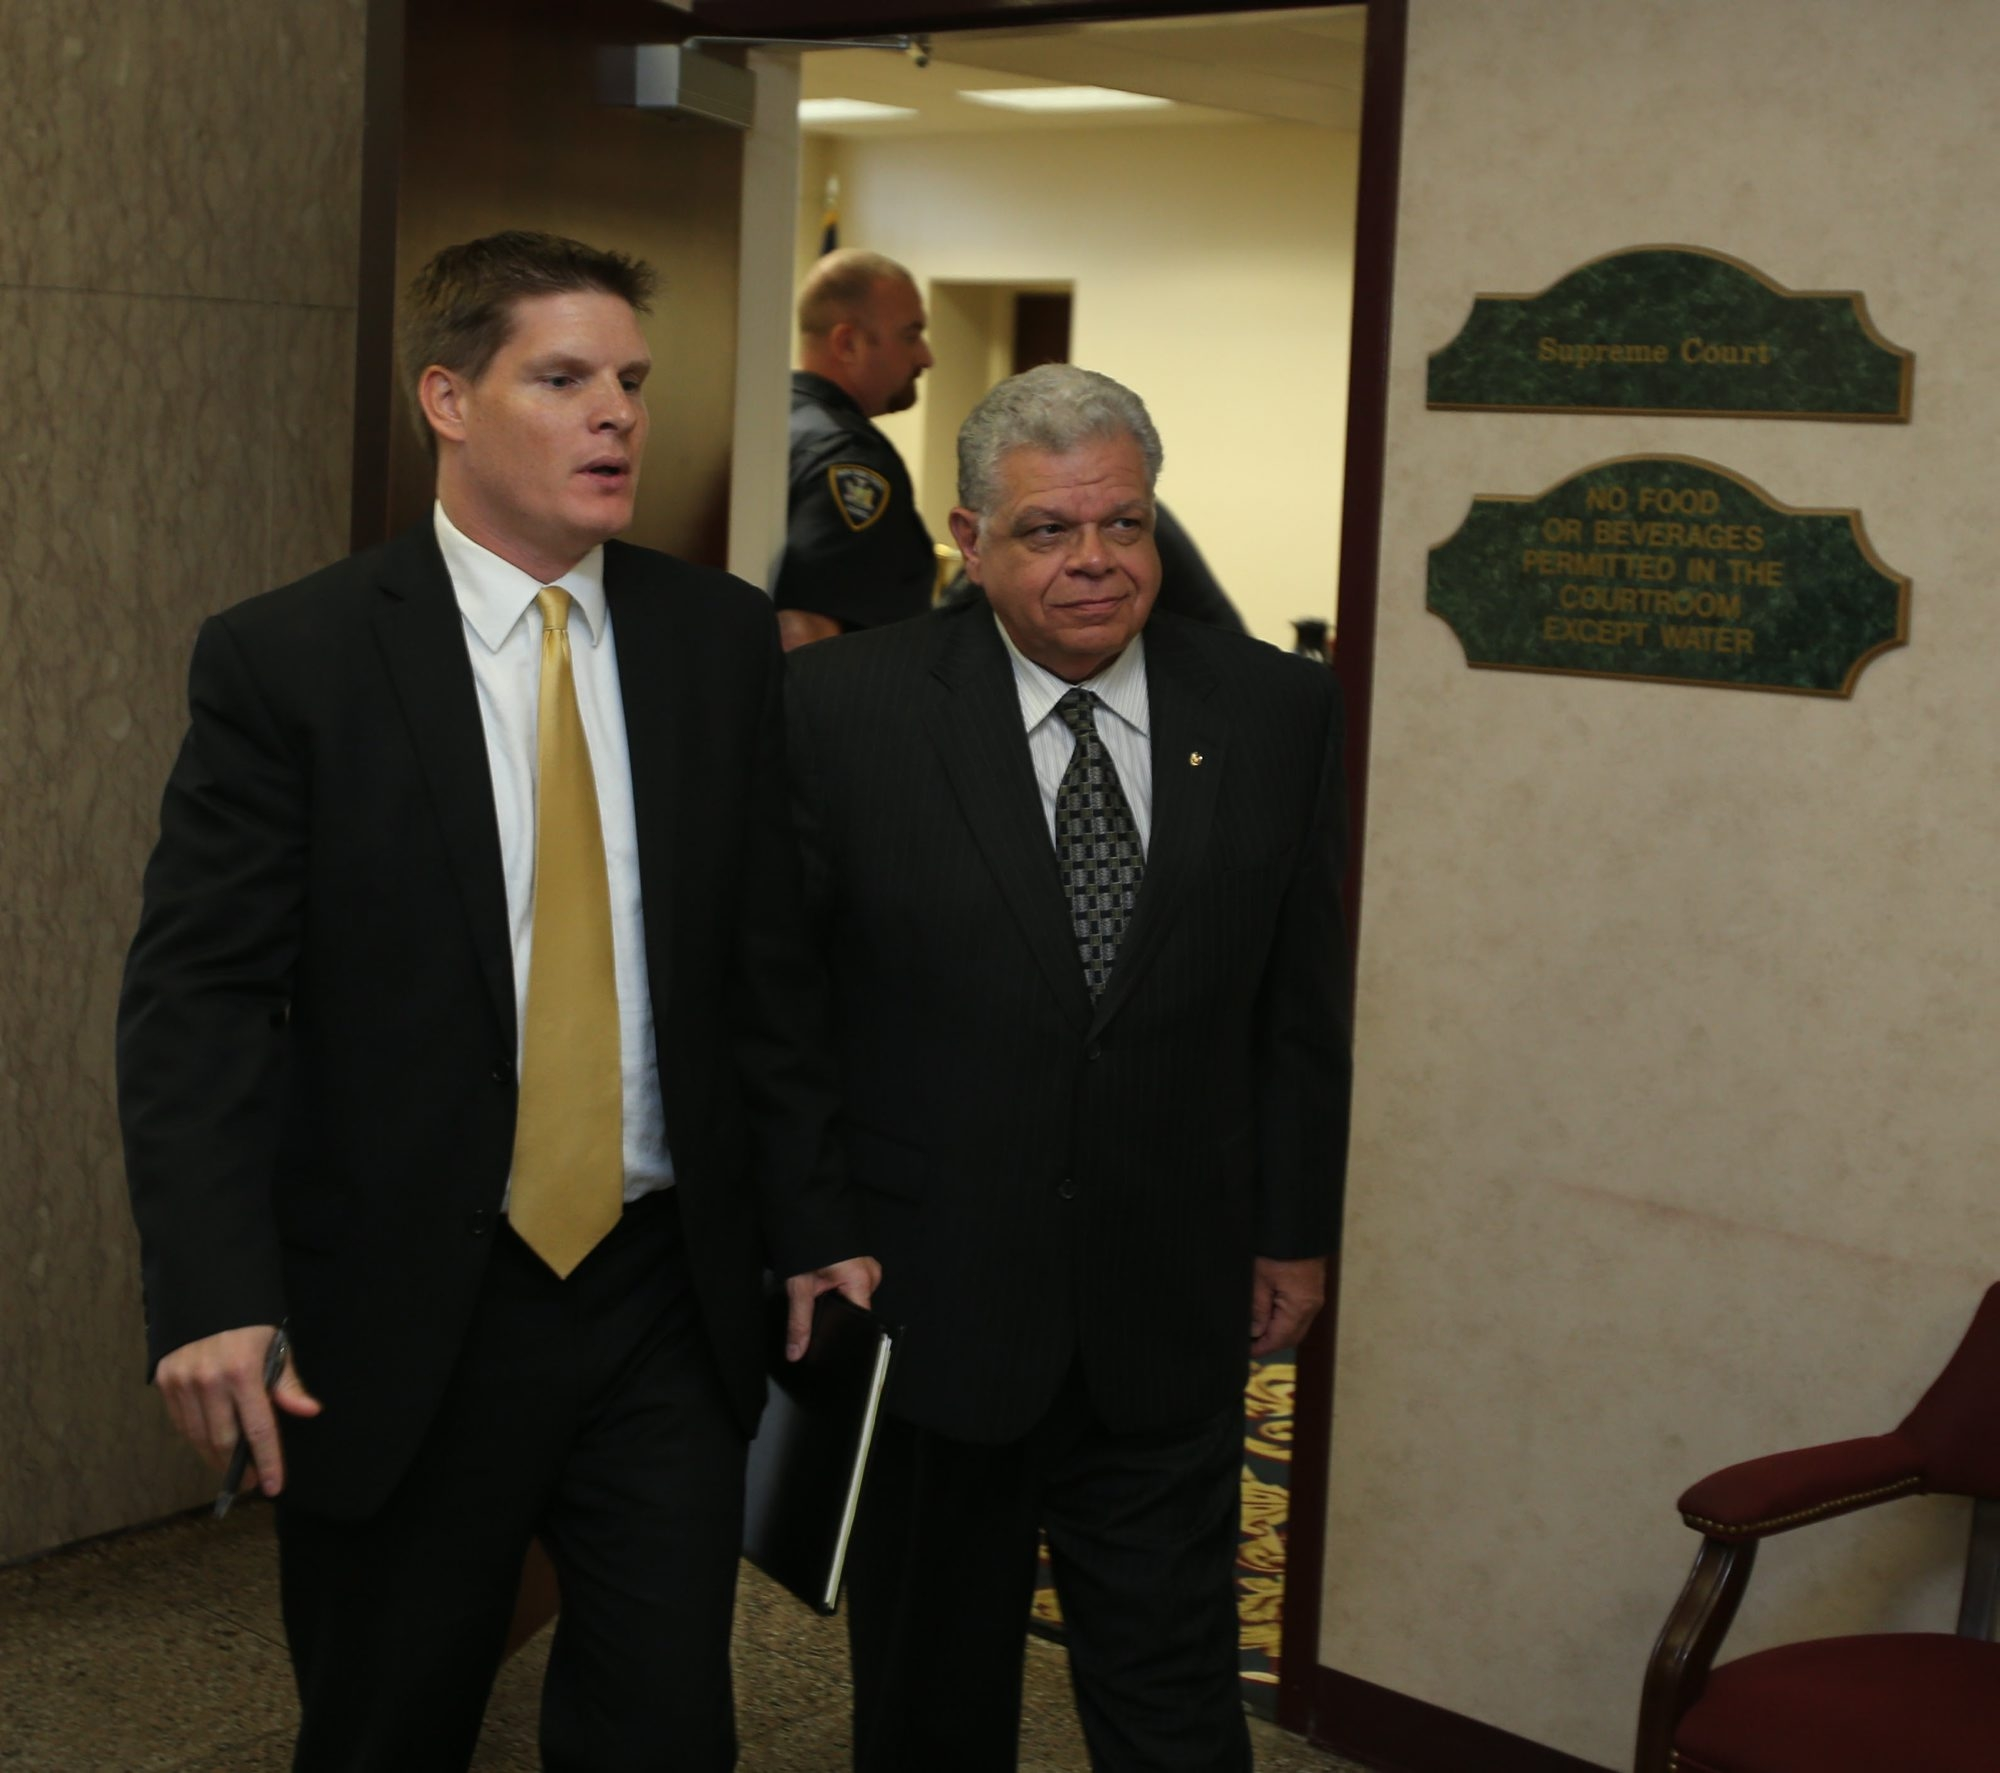 In this file photo from October, 2013, Town of Niagara Supervisor Steve Richards, right, talks with legal adviser Scott Hapeman after an arraignment hearing at the Niagara County Courthouse in Lockport.